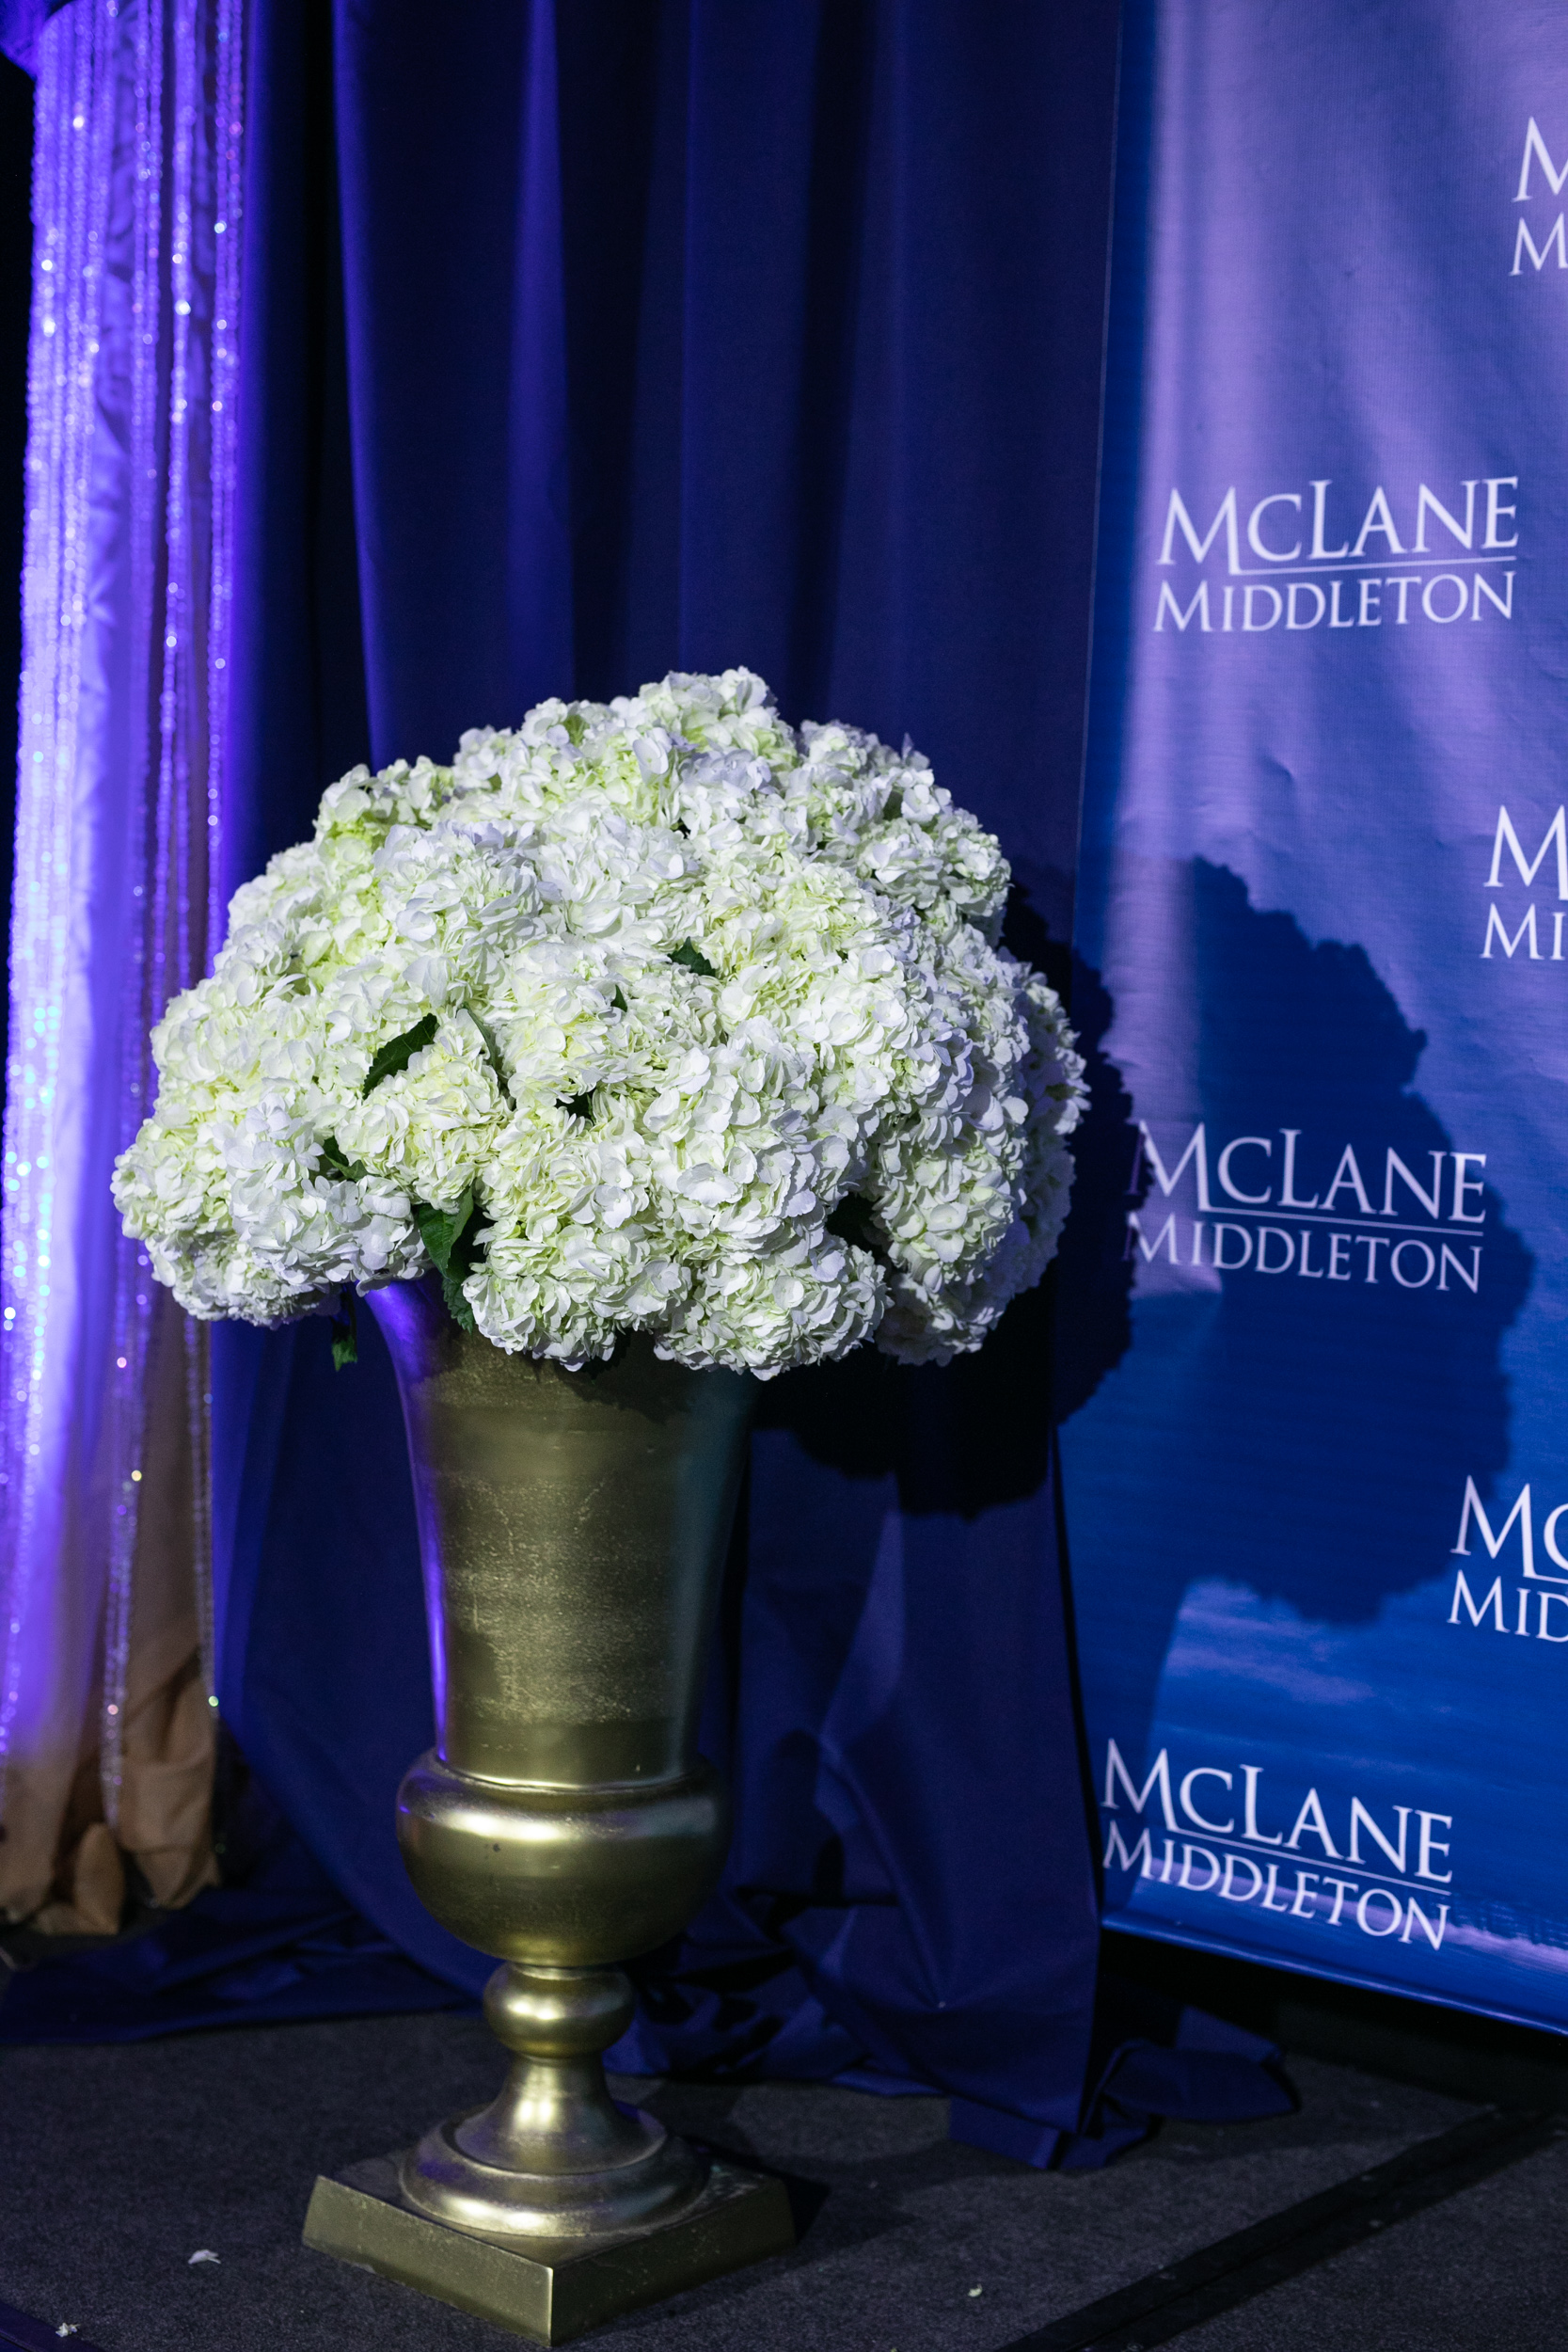 Malloy_Events_Pizzuti_McLane_Middleton_Centennial_Celebration_Manchester_NH_Corporate_Production_floral